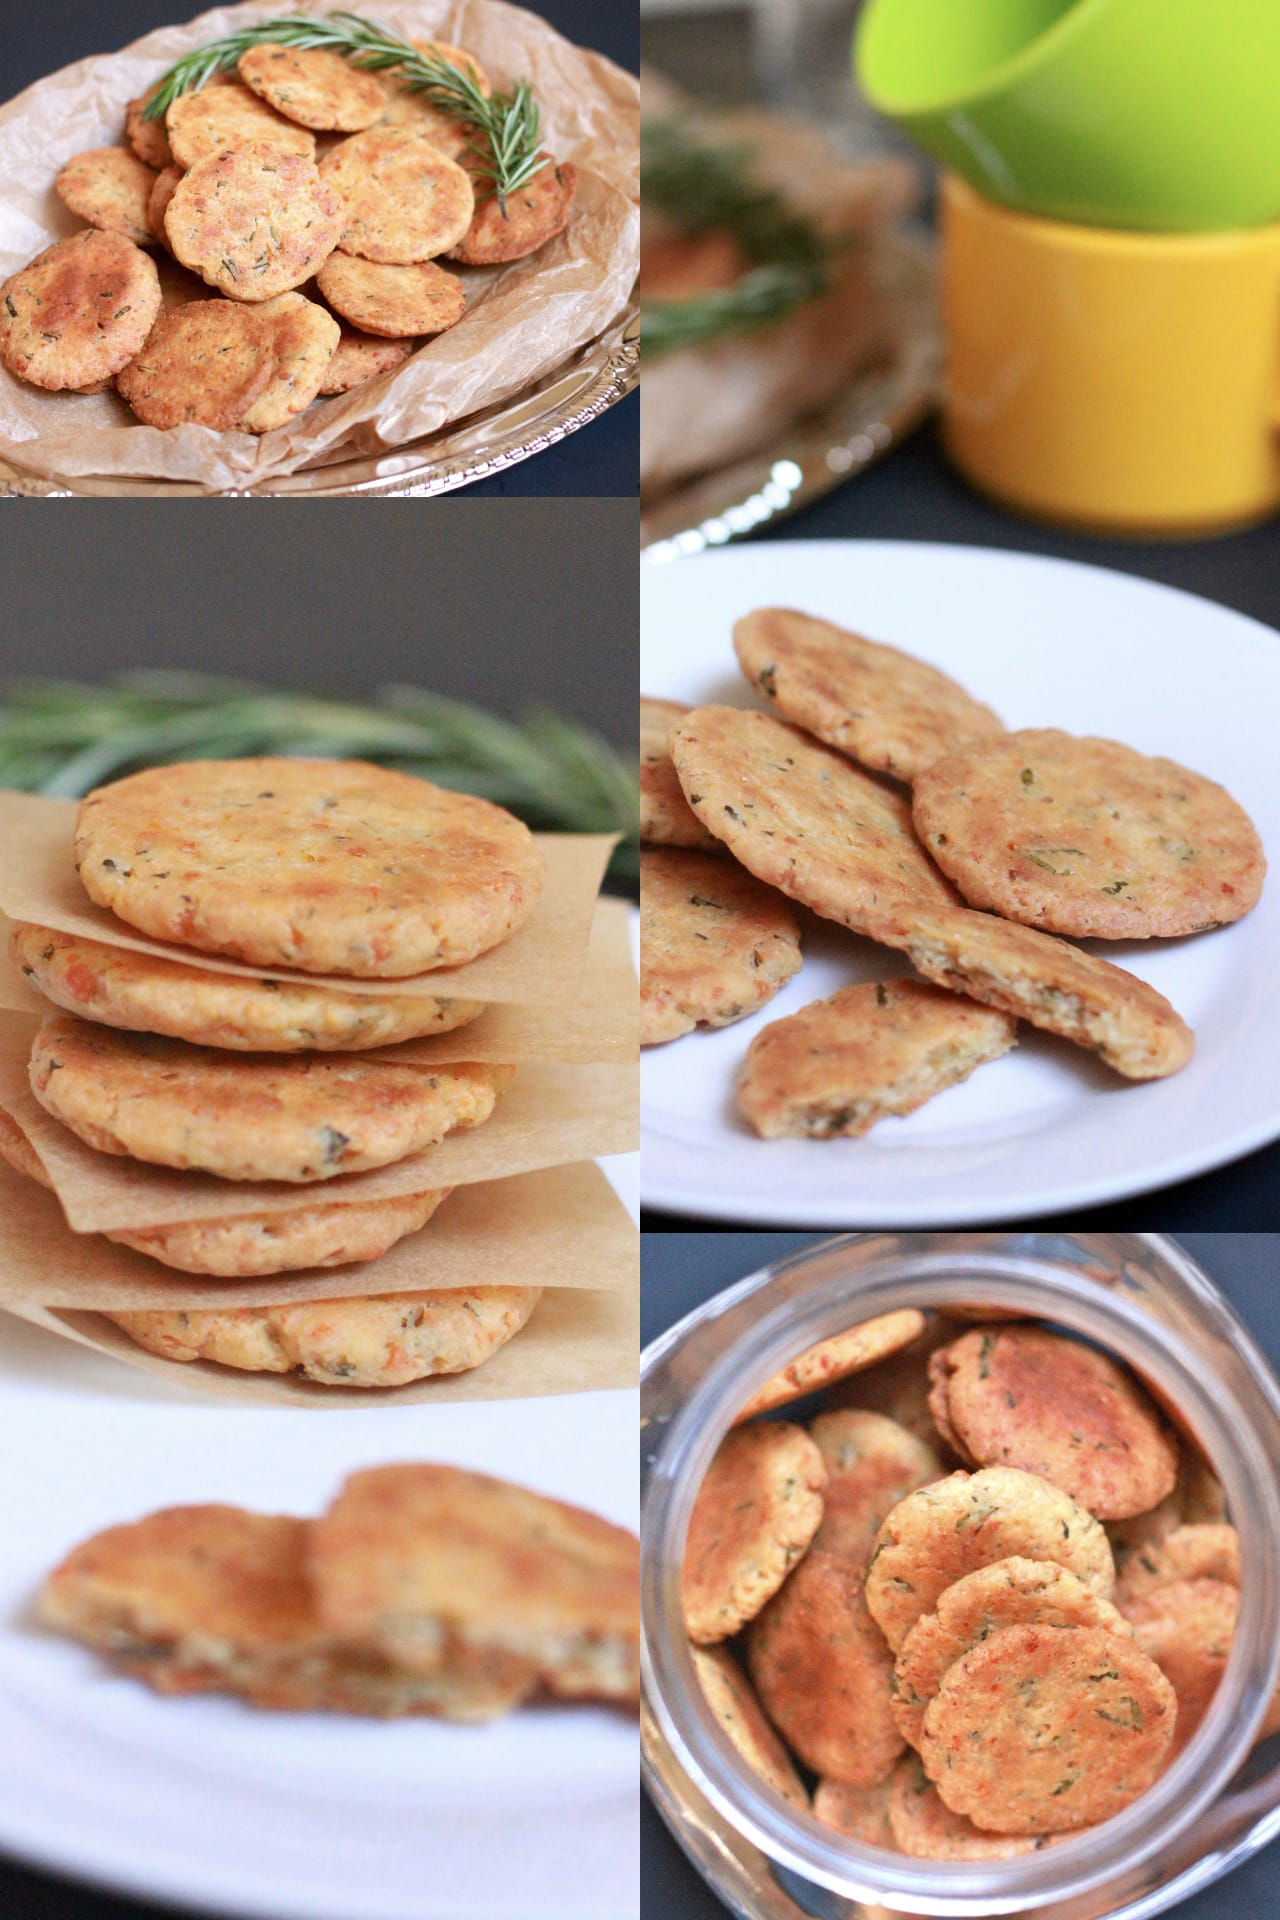 Rosemary and Parmesan Savory Cookies 2